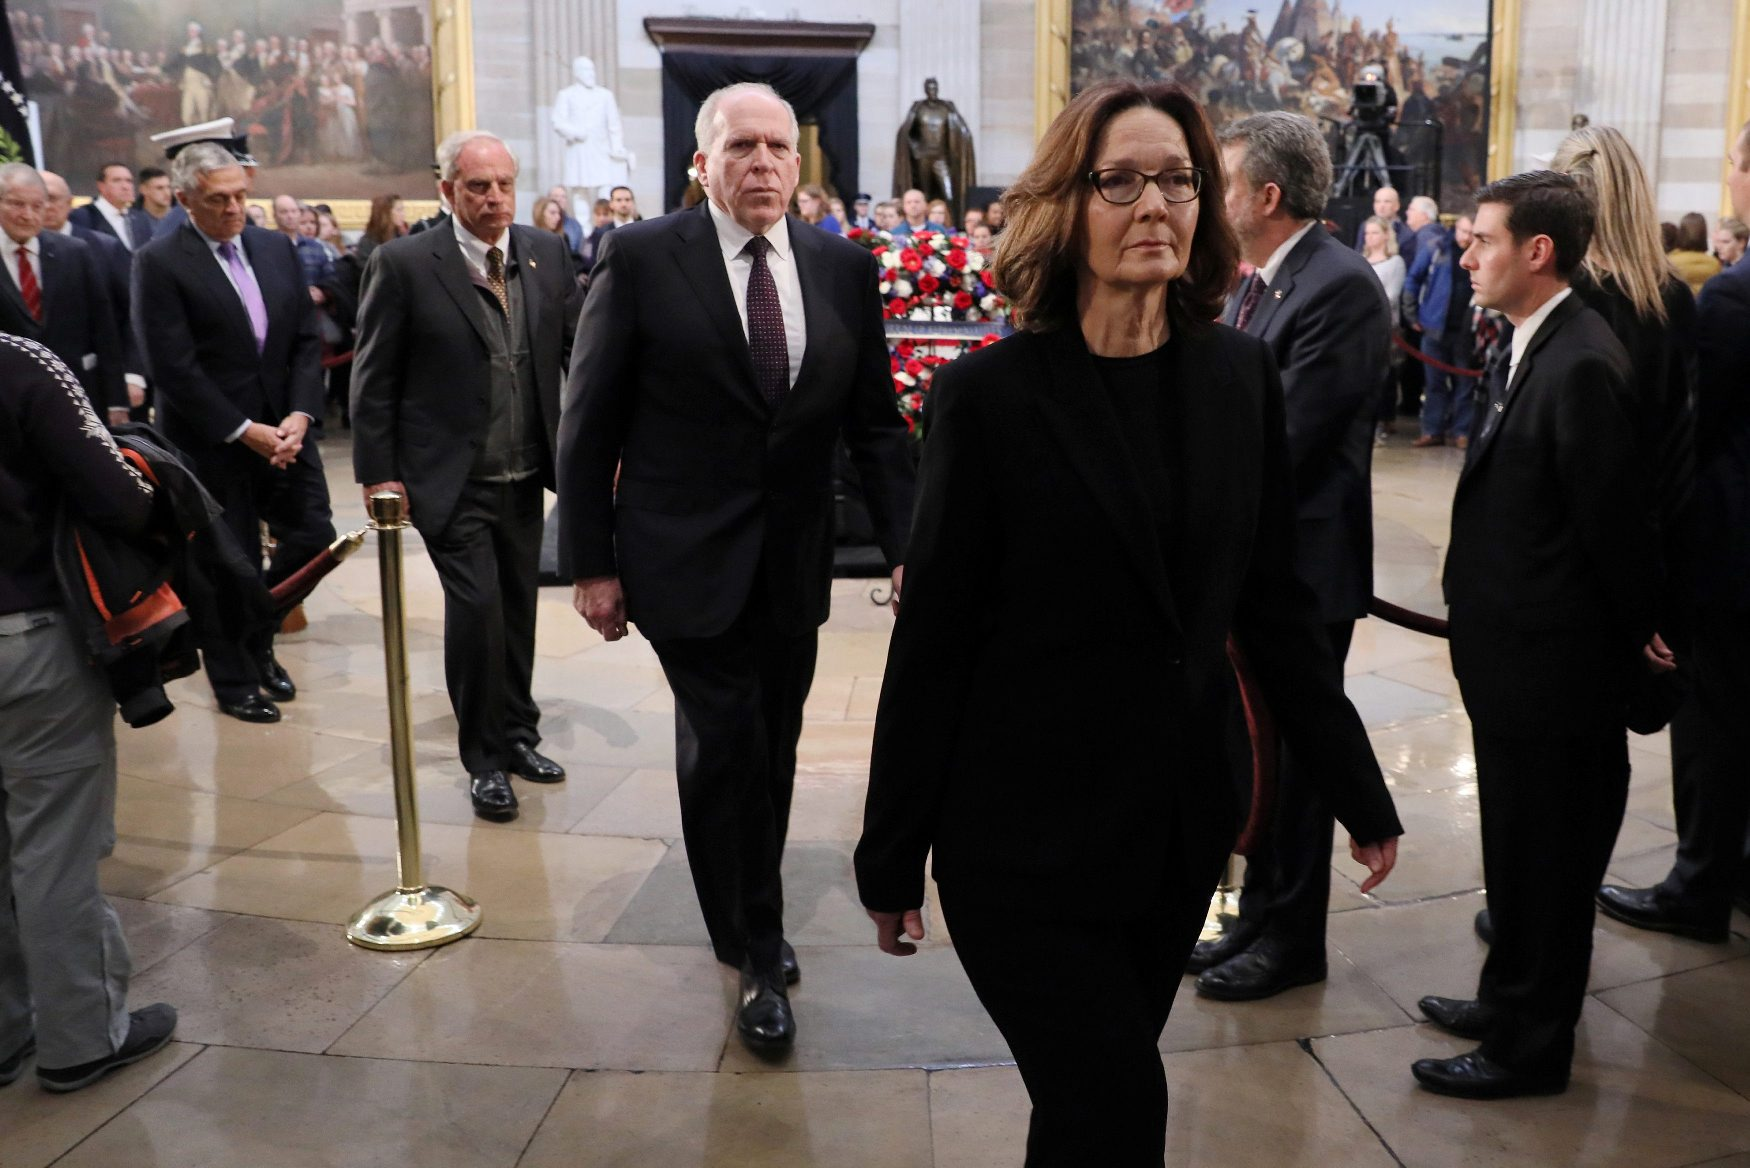 U.S. Central Intelligence Agency (CIA) Director Gina Haspel (R) leads former CIA directors including George Tenet, Porter Goss and John Brennan as they depart after paying their respects to former U.S. President George H. W. Bush as his body lies in state inside the Rotunda of the U.S. Capitol in Washington, U.S., December 4, 2018. REUTERS/Jonathan Ernst